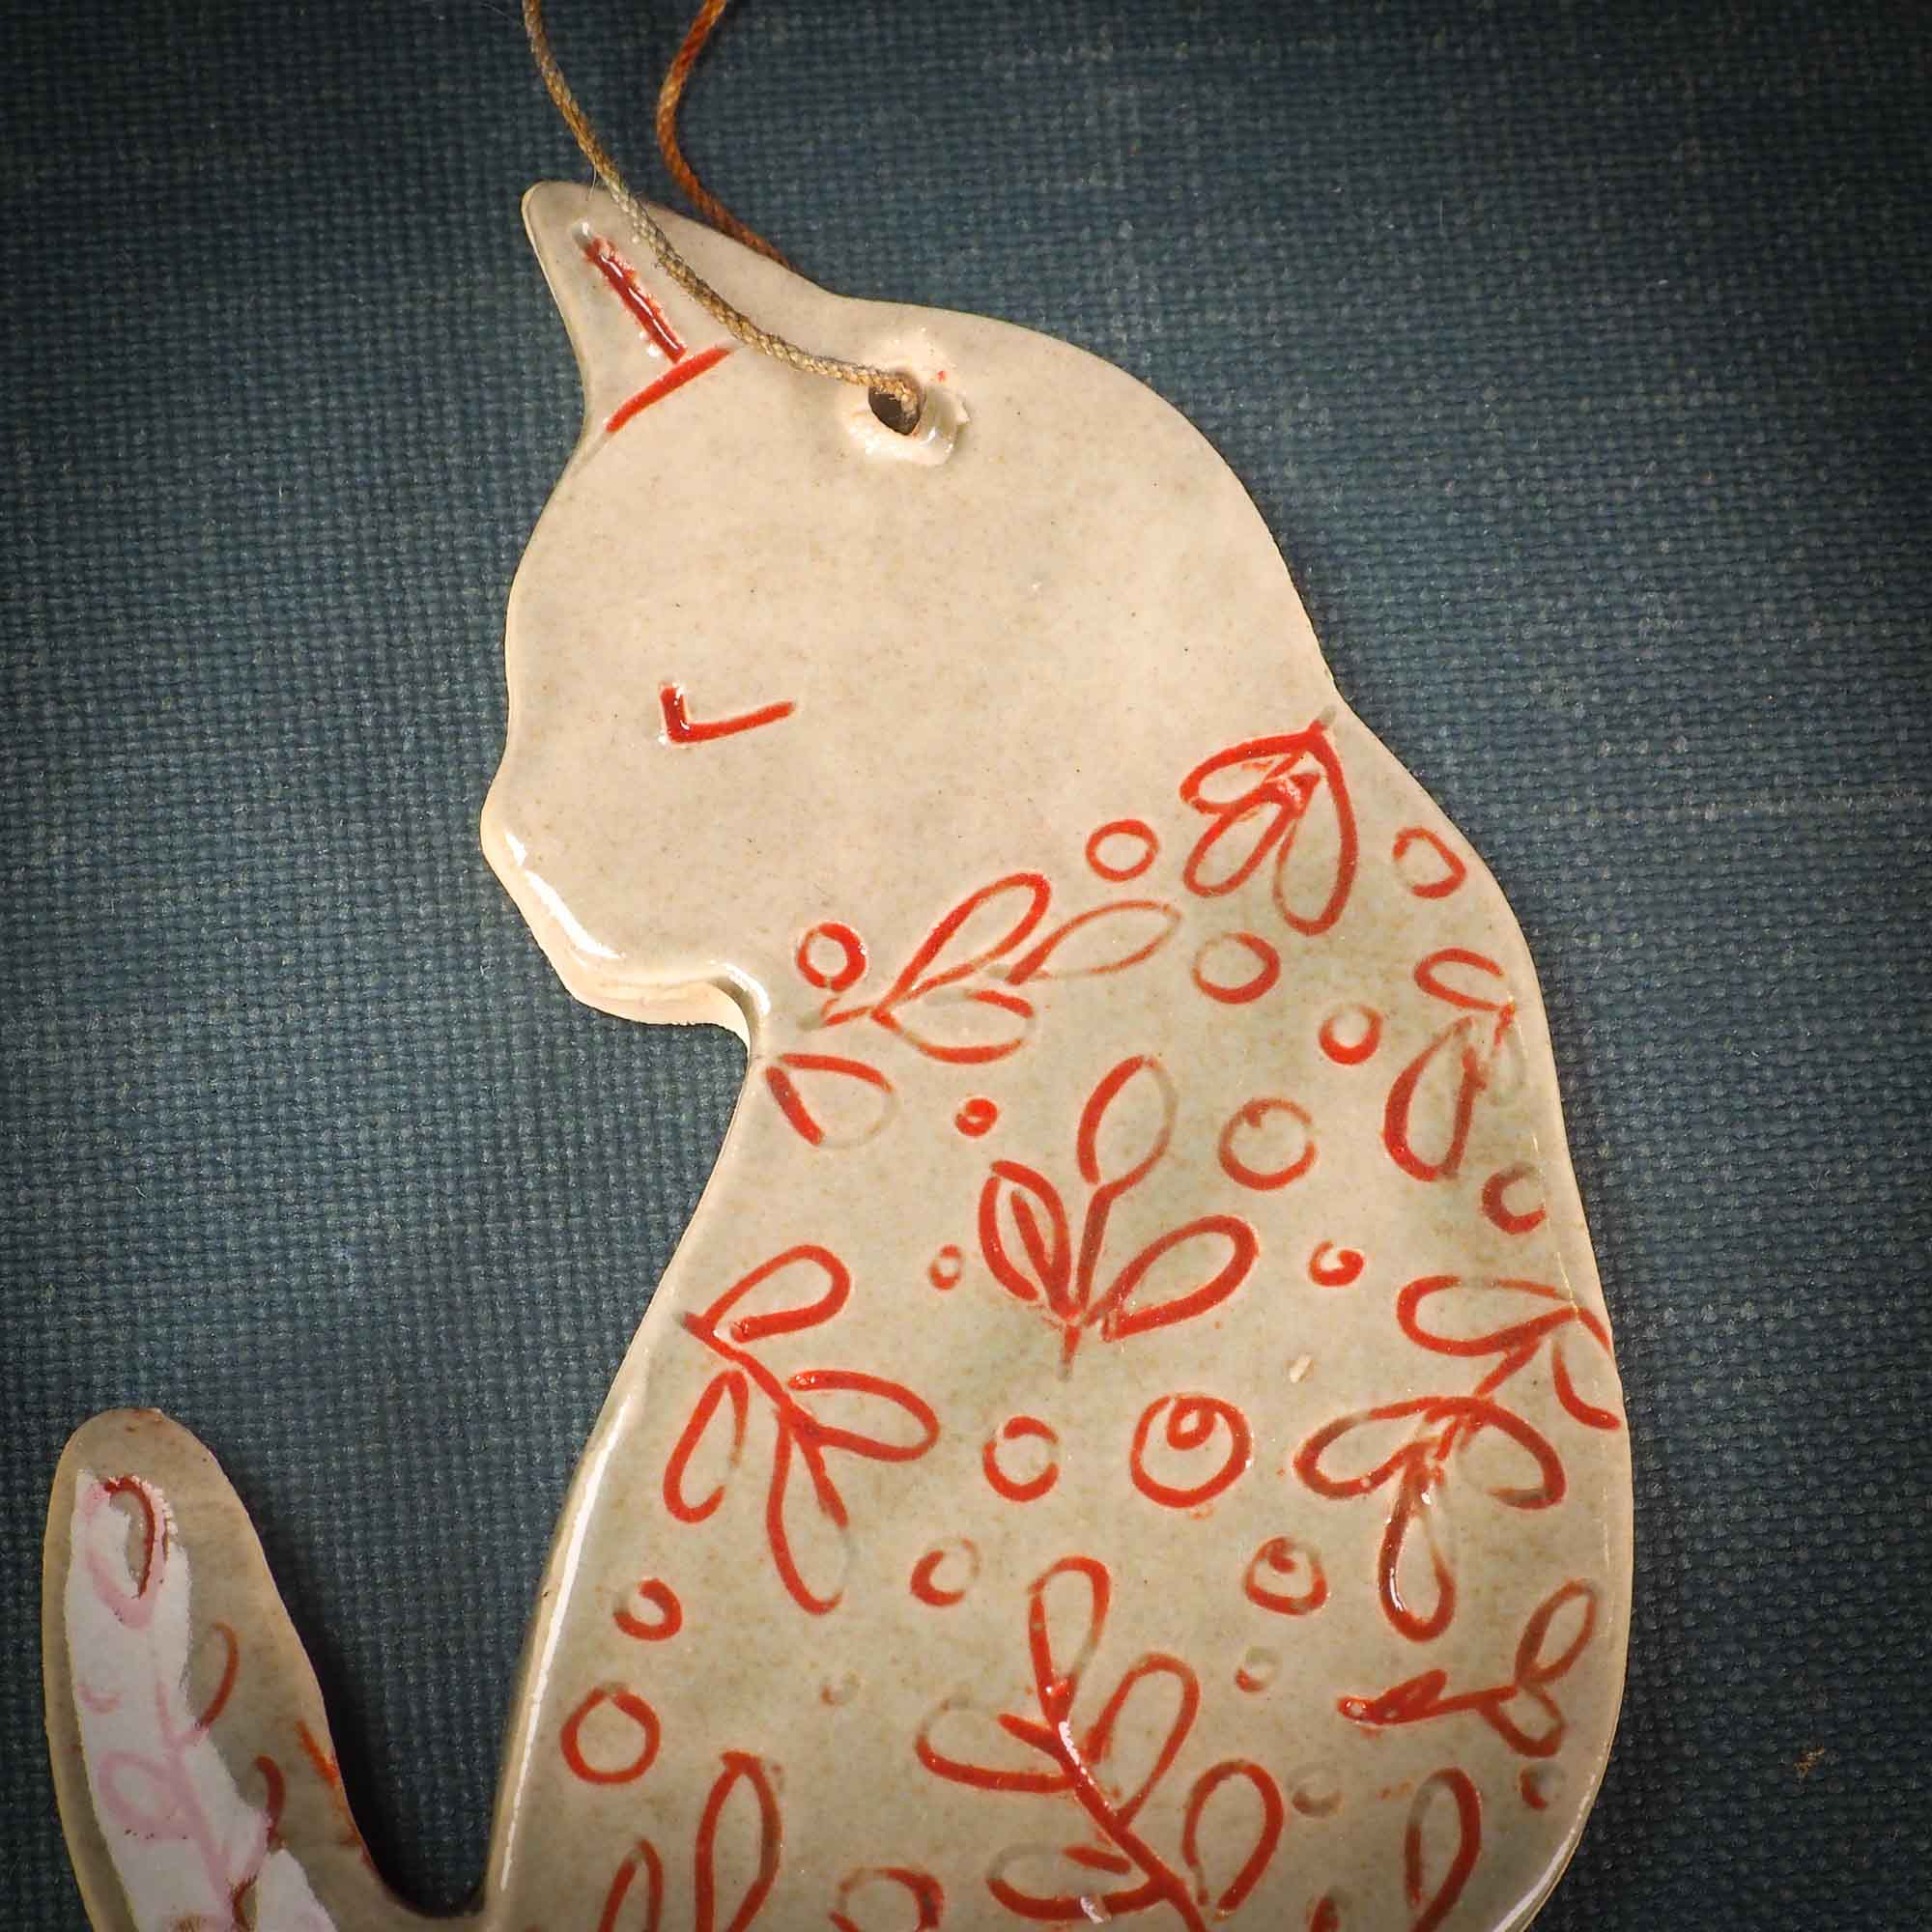 An original Christmas Holiday tree ornament ceramic cat, handmade by Idania Salcido the artist behind Danita Art. Glazed carved sgraffito stoneware, hand painted and decorated, it has a beautiful vintage glass tree ornament to adorn a unique holiday gift for family and friends. Christmas gift for animal and pet lovers.